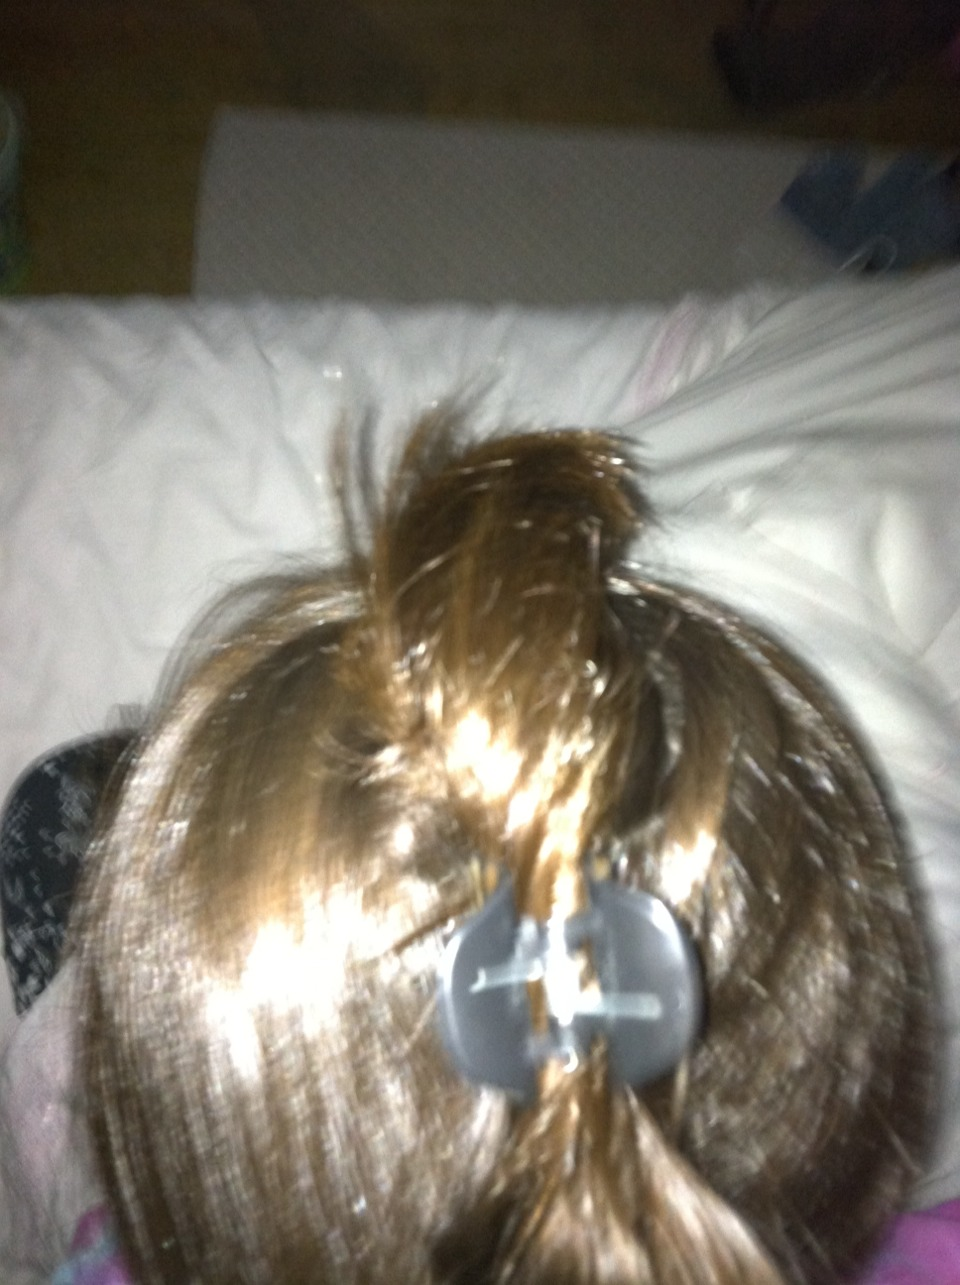 Keep hair clip in a place where you can place your head down on a pillow comfortably